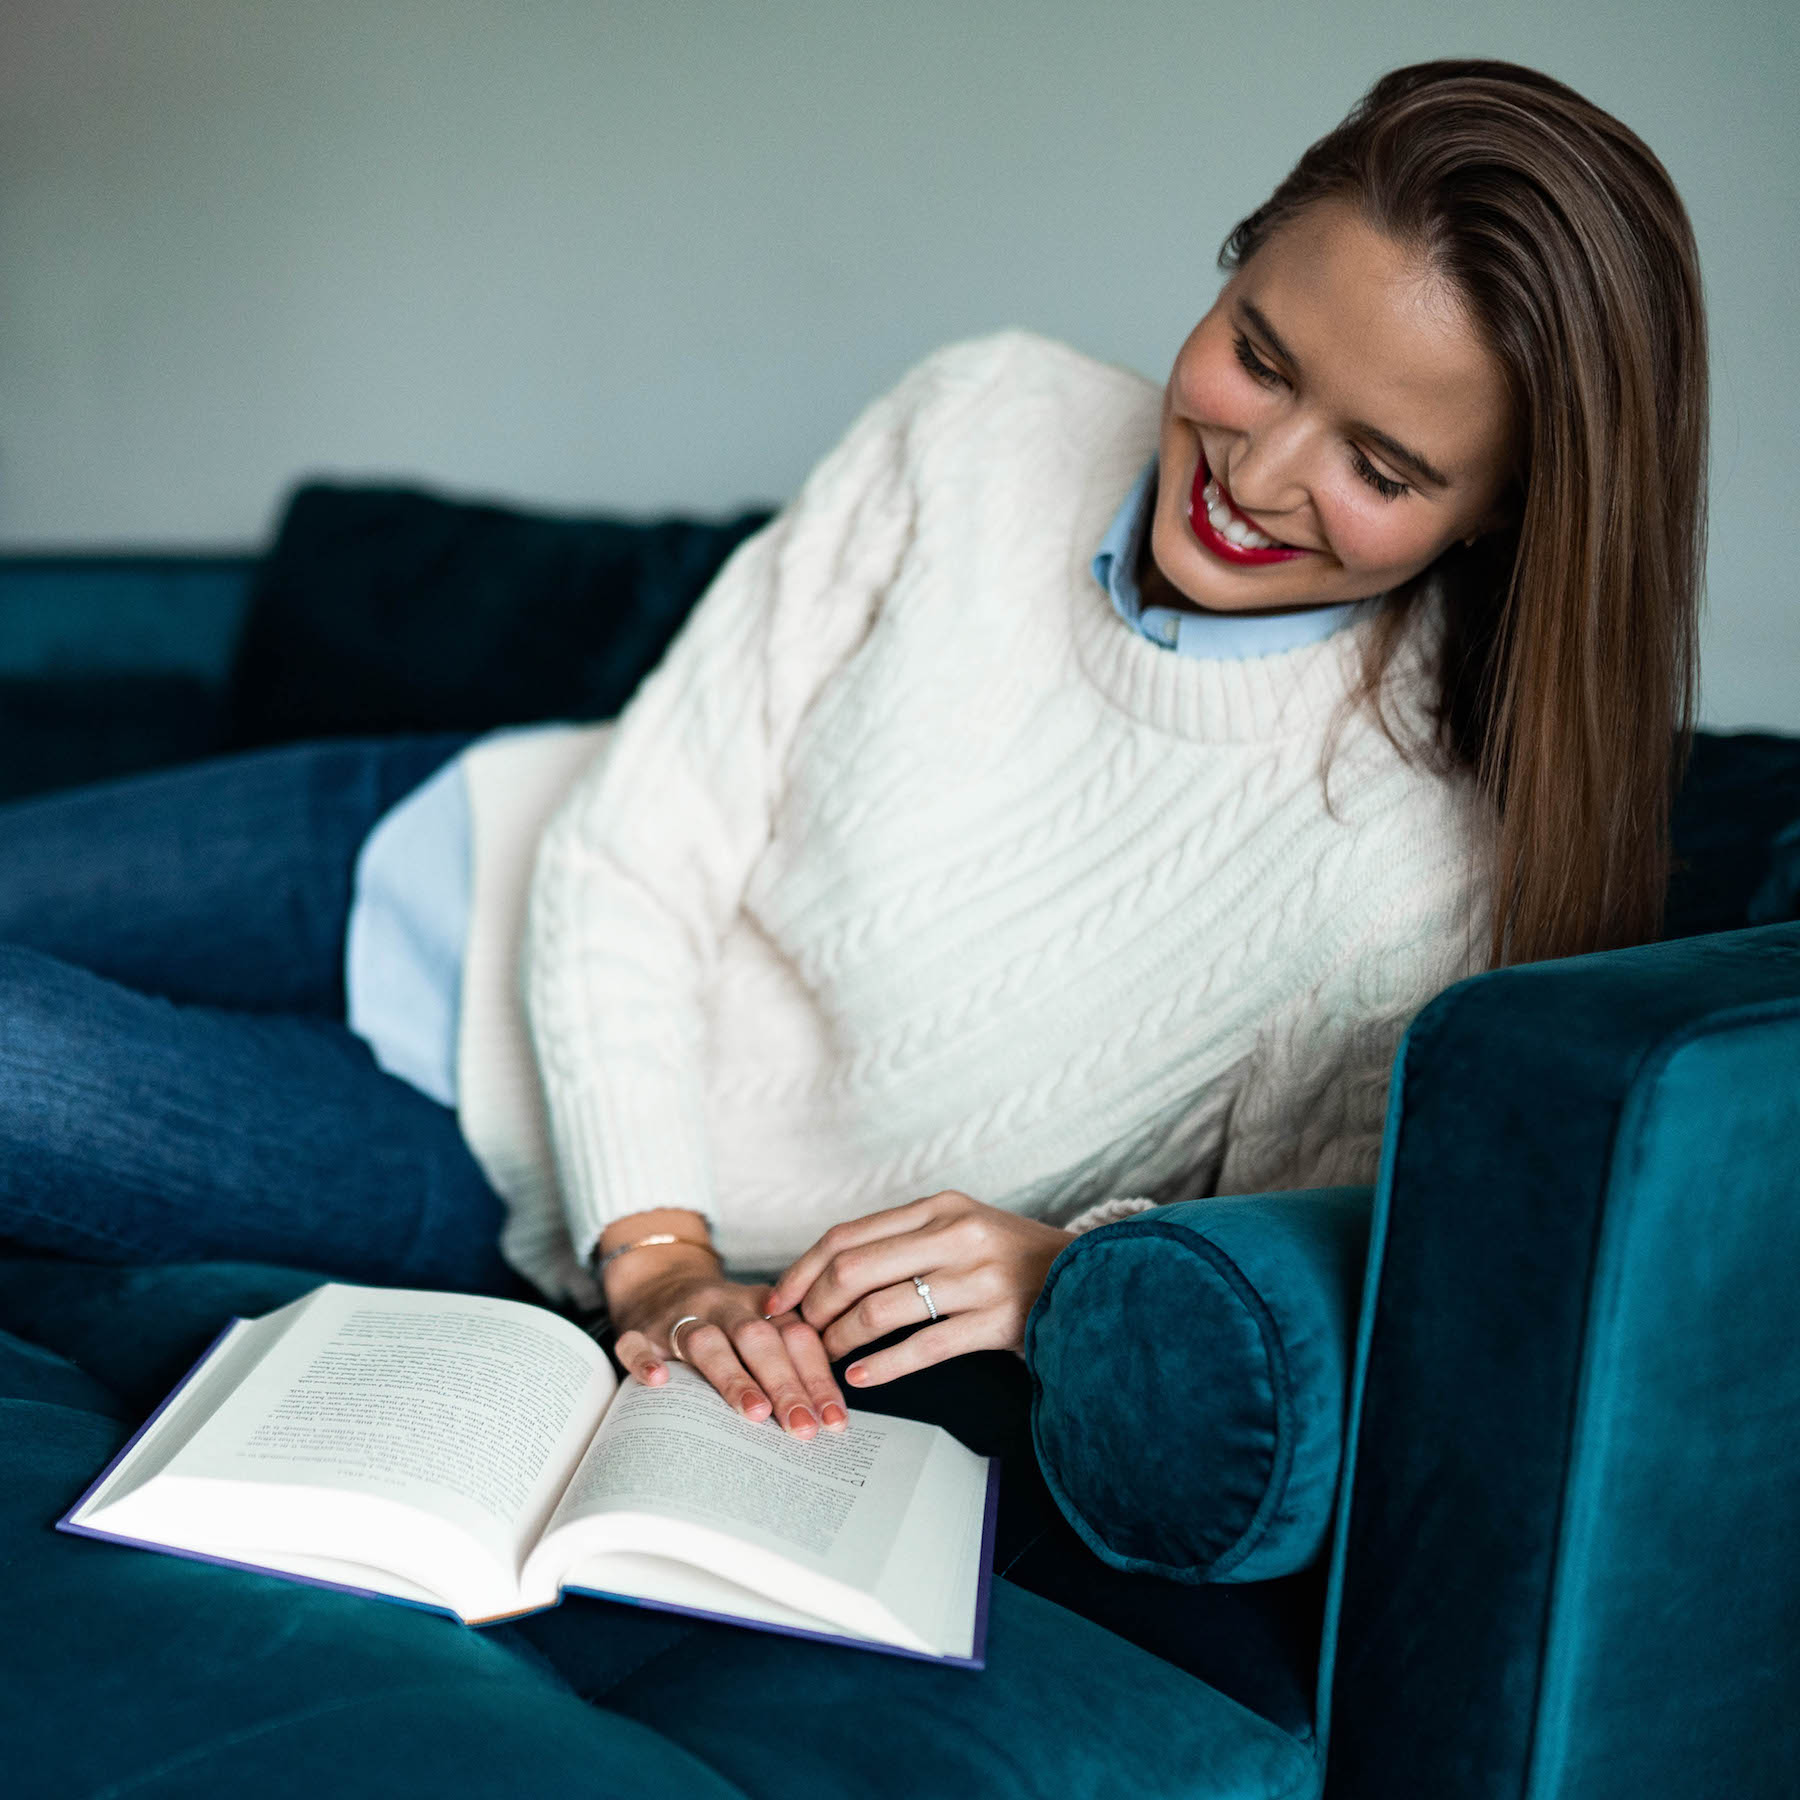 gant cable knit never stop learning suelovesnyc_gant_gewinnspiel_never_stop_learning_gant_cable_knit_1